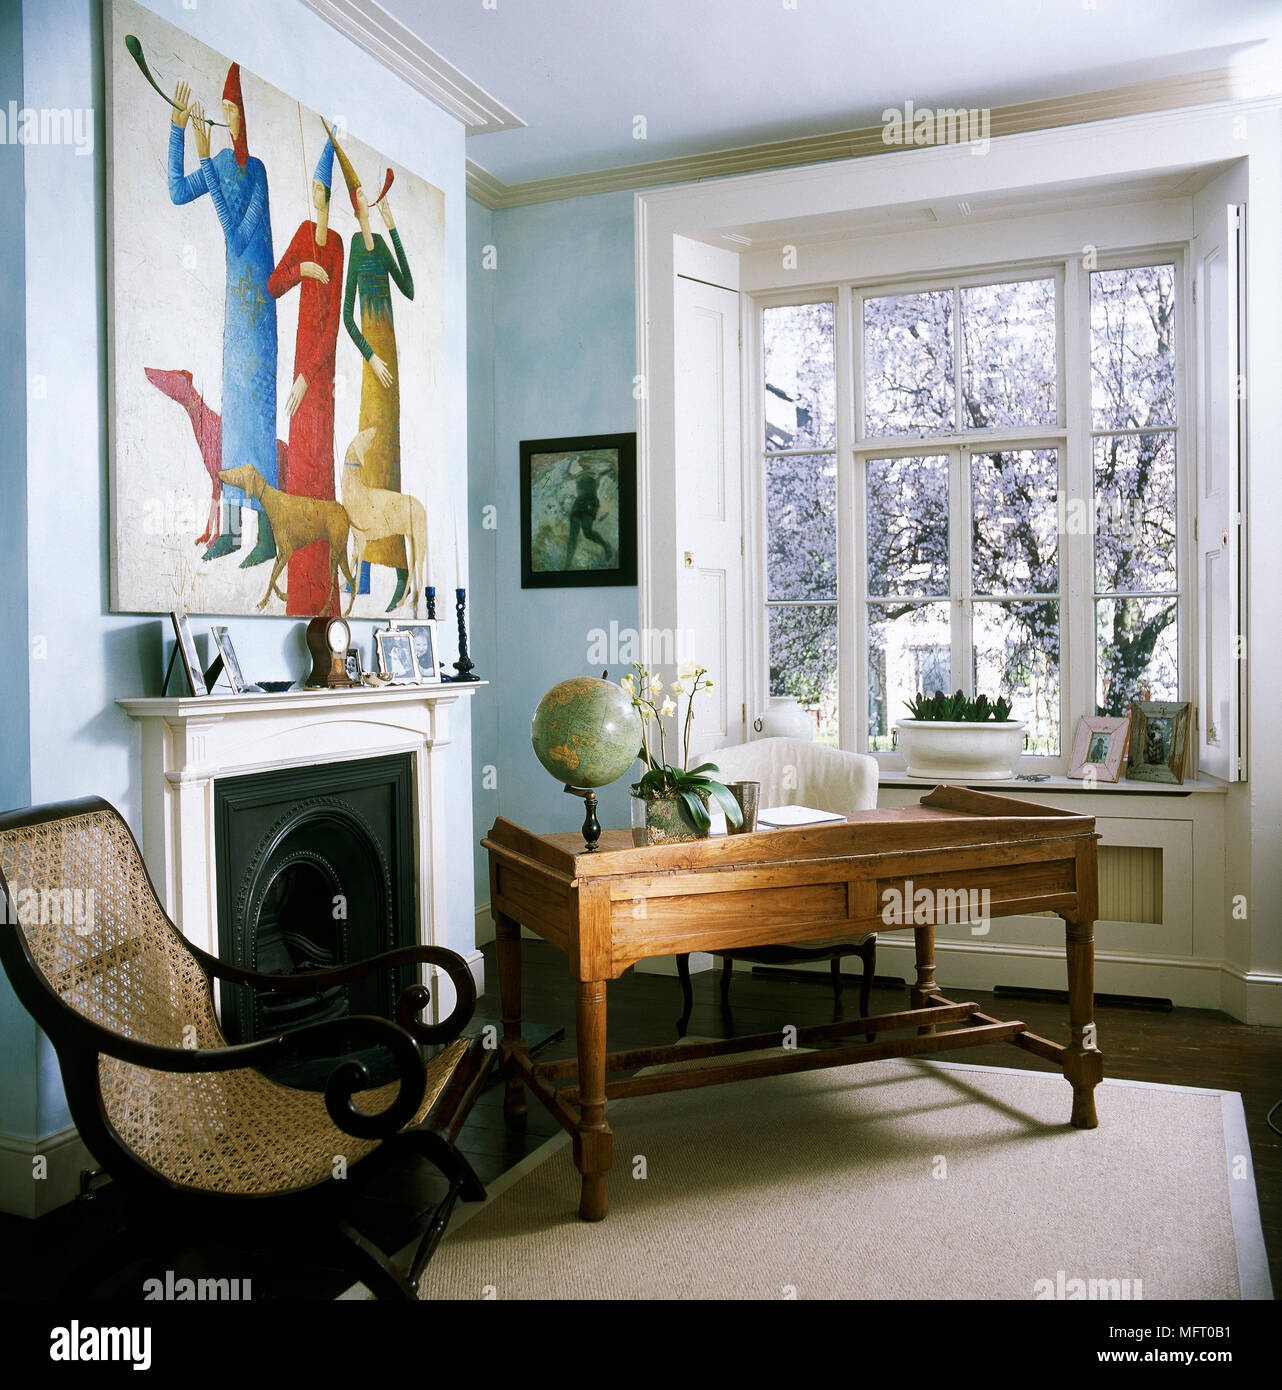 Traditional Sitting Room With A Wicker Chair And Wooden